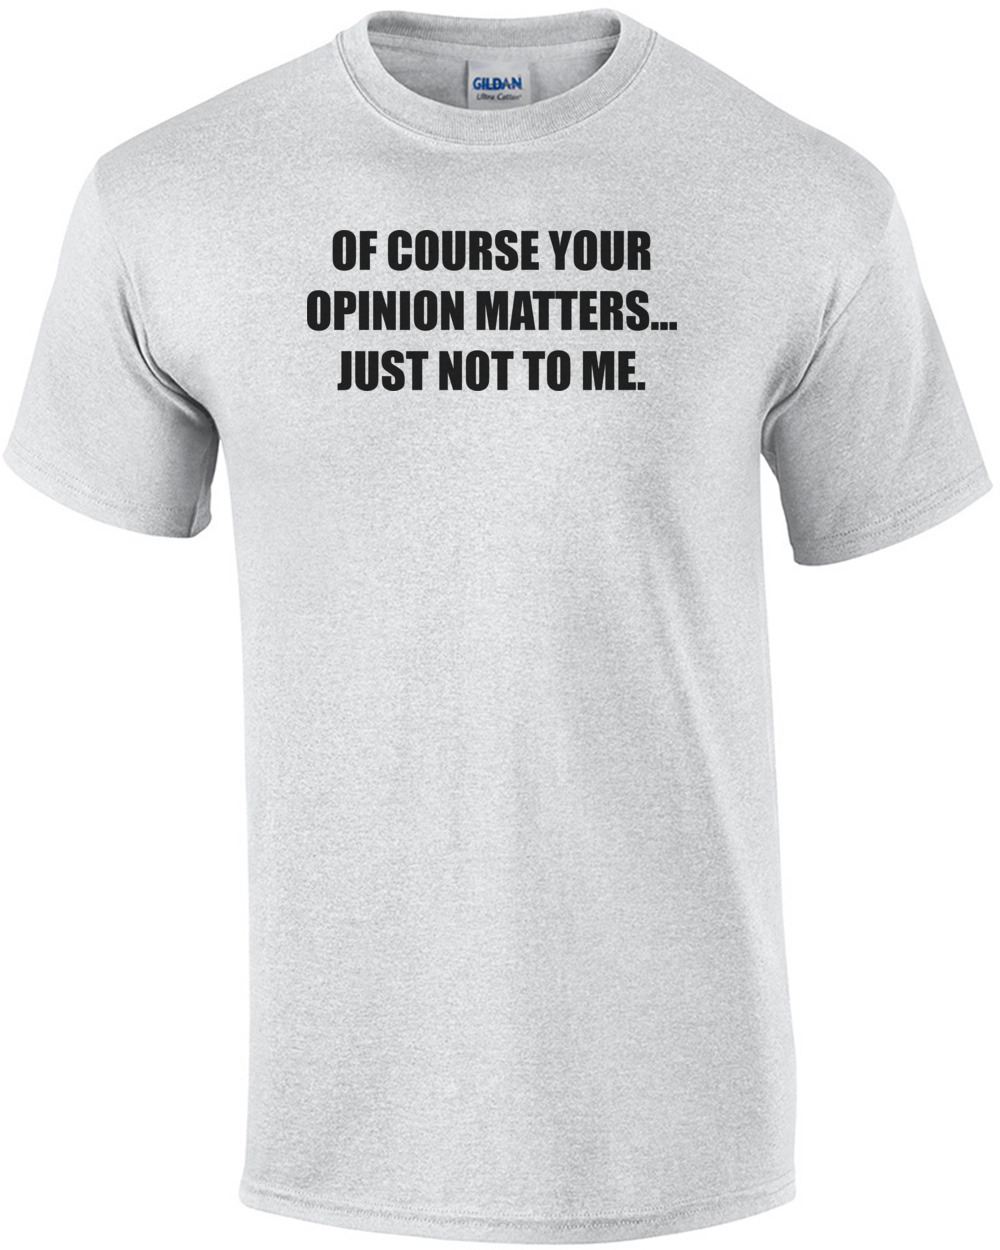 5761271b8 OF COURSE YOUR OPINION MATTERS... JUST NOT TO ME. shirt